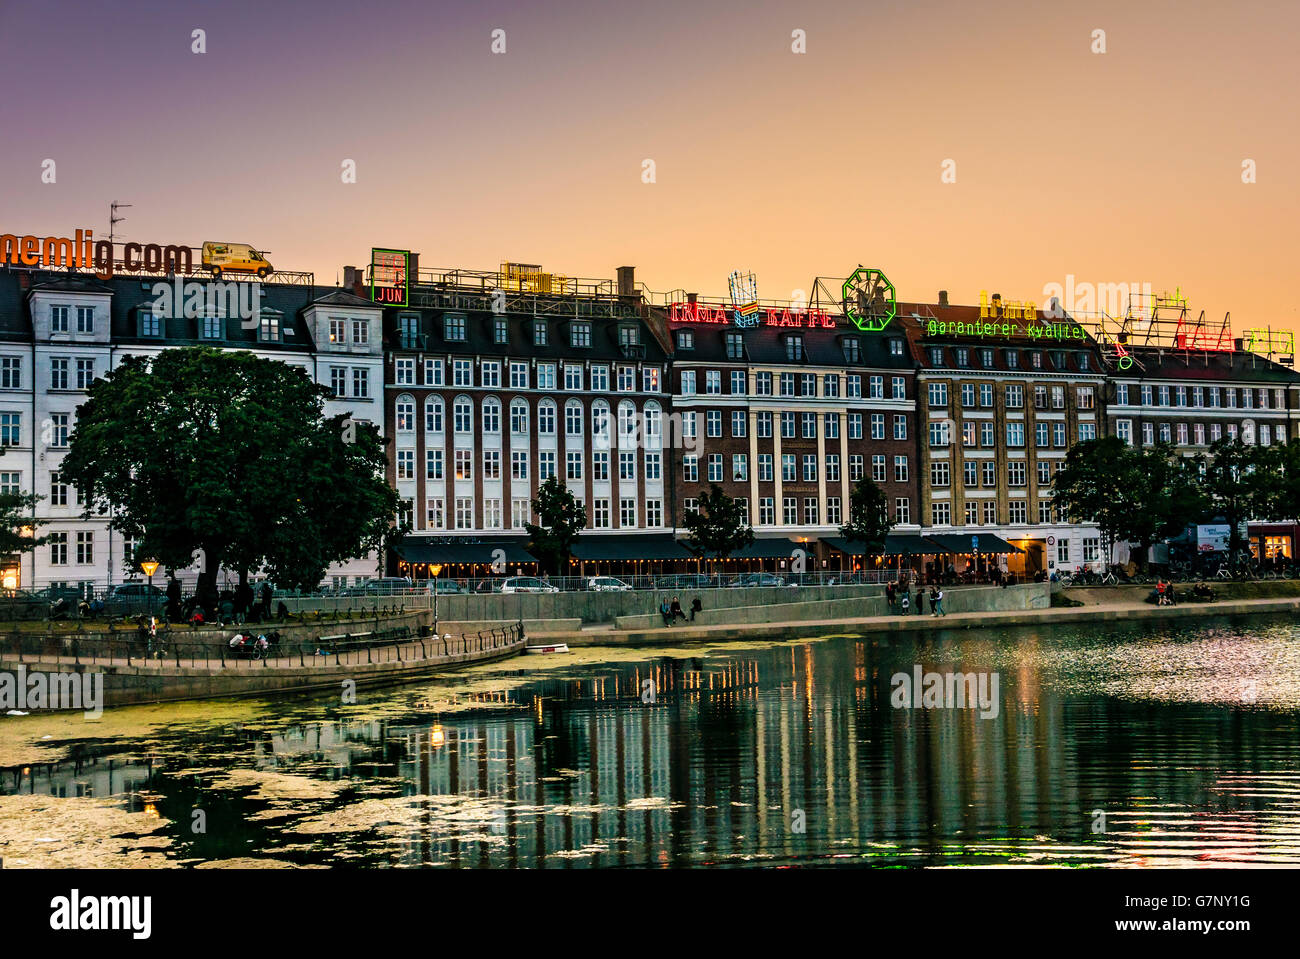 Buildings with neon advertising signs on the roofs beside the Sortedams Sø, Copenhagen, during sunset. - Stock Image